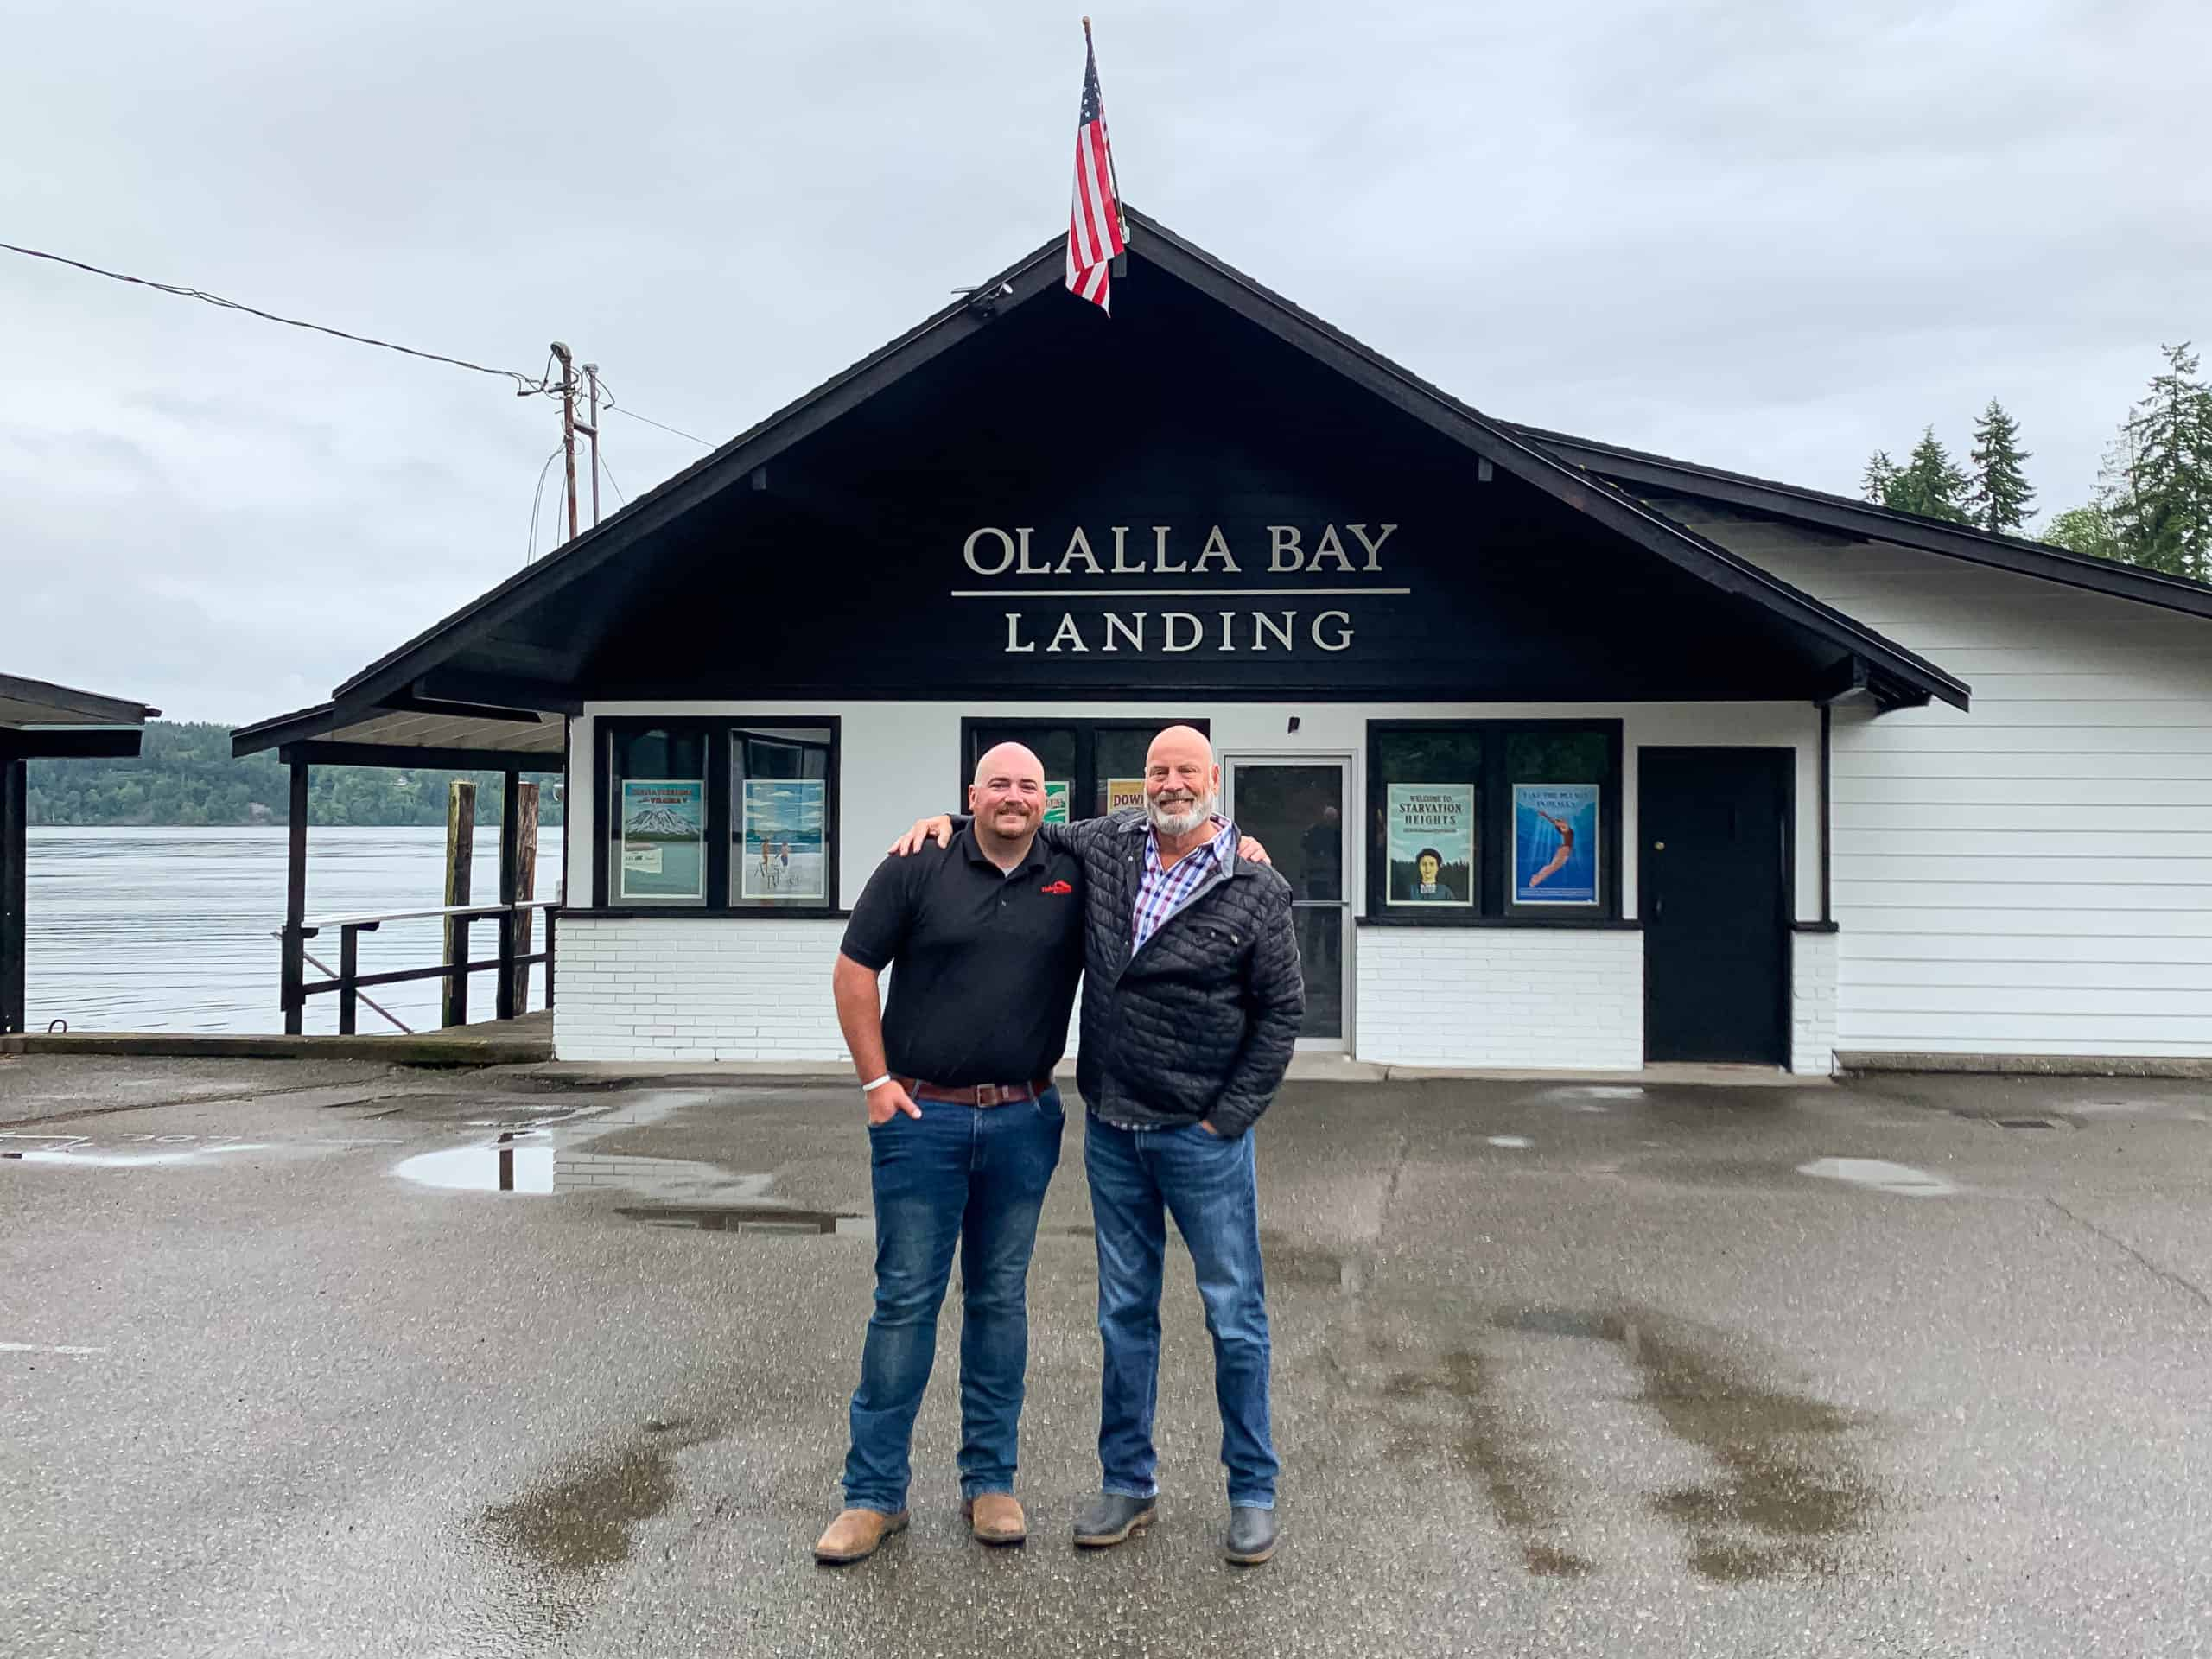 """Featured image for """"Honoring the Spirit of Small Town Olalla, WA through the Gift of New Roof for Revival of Community Space"""""""